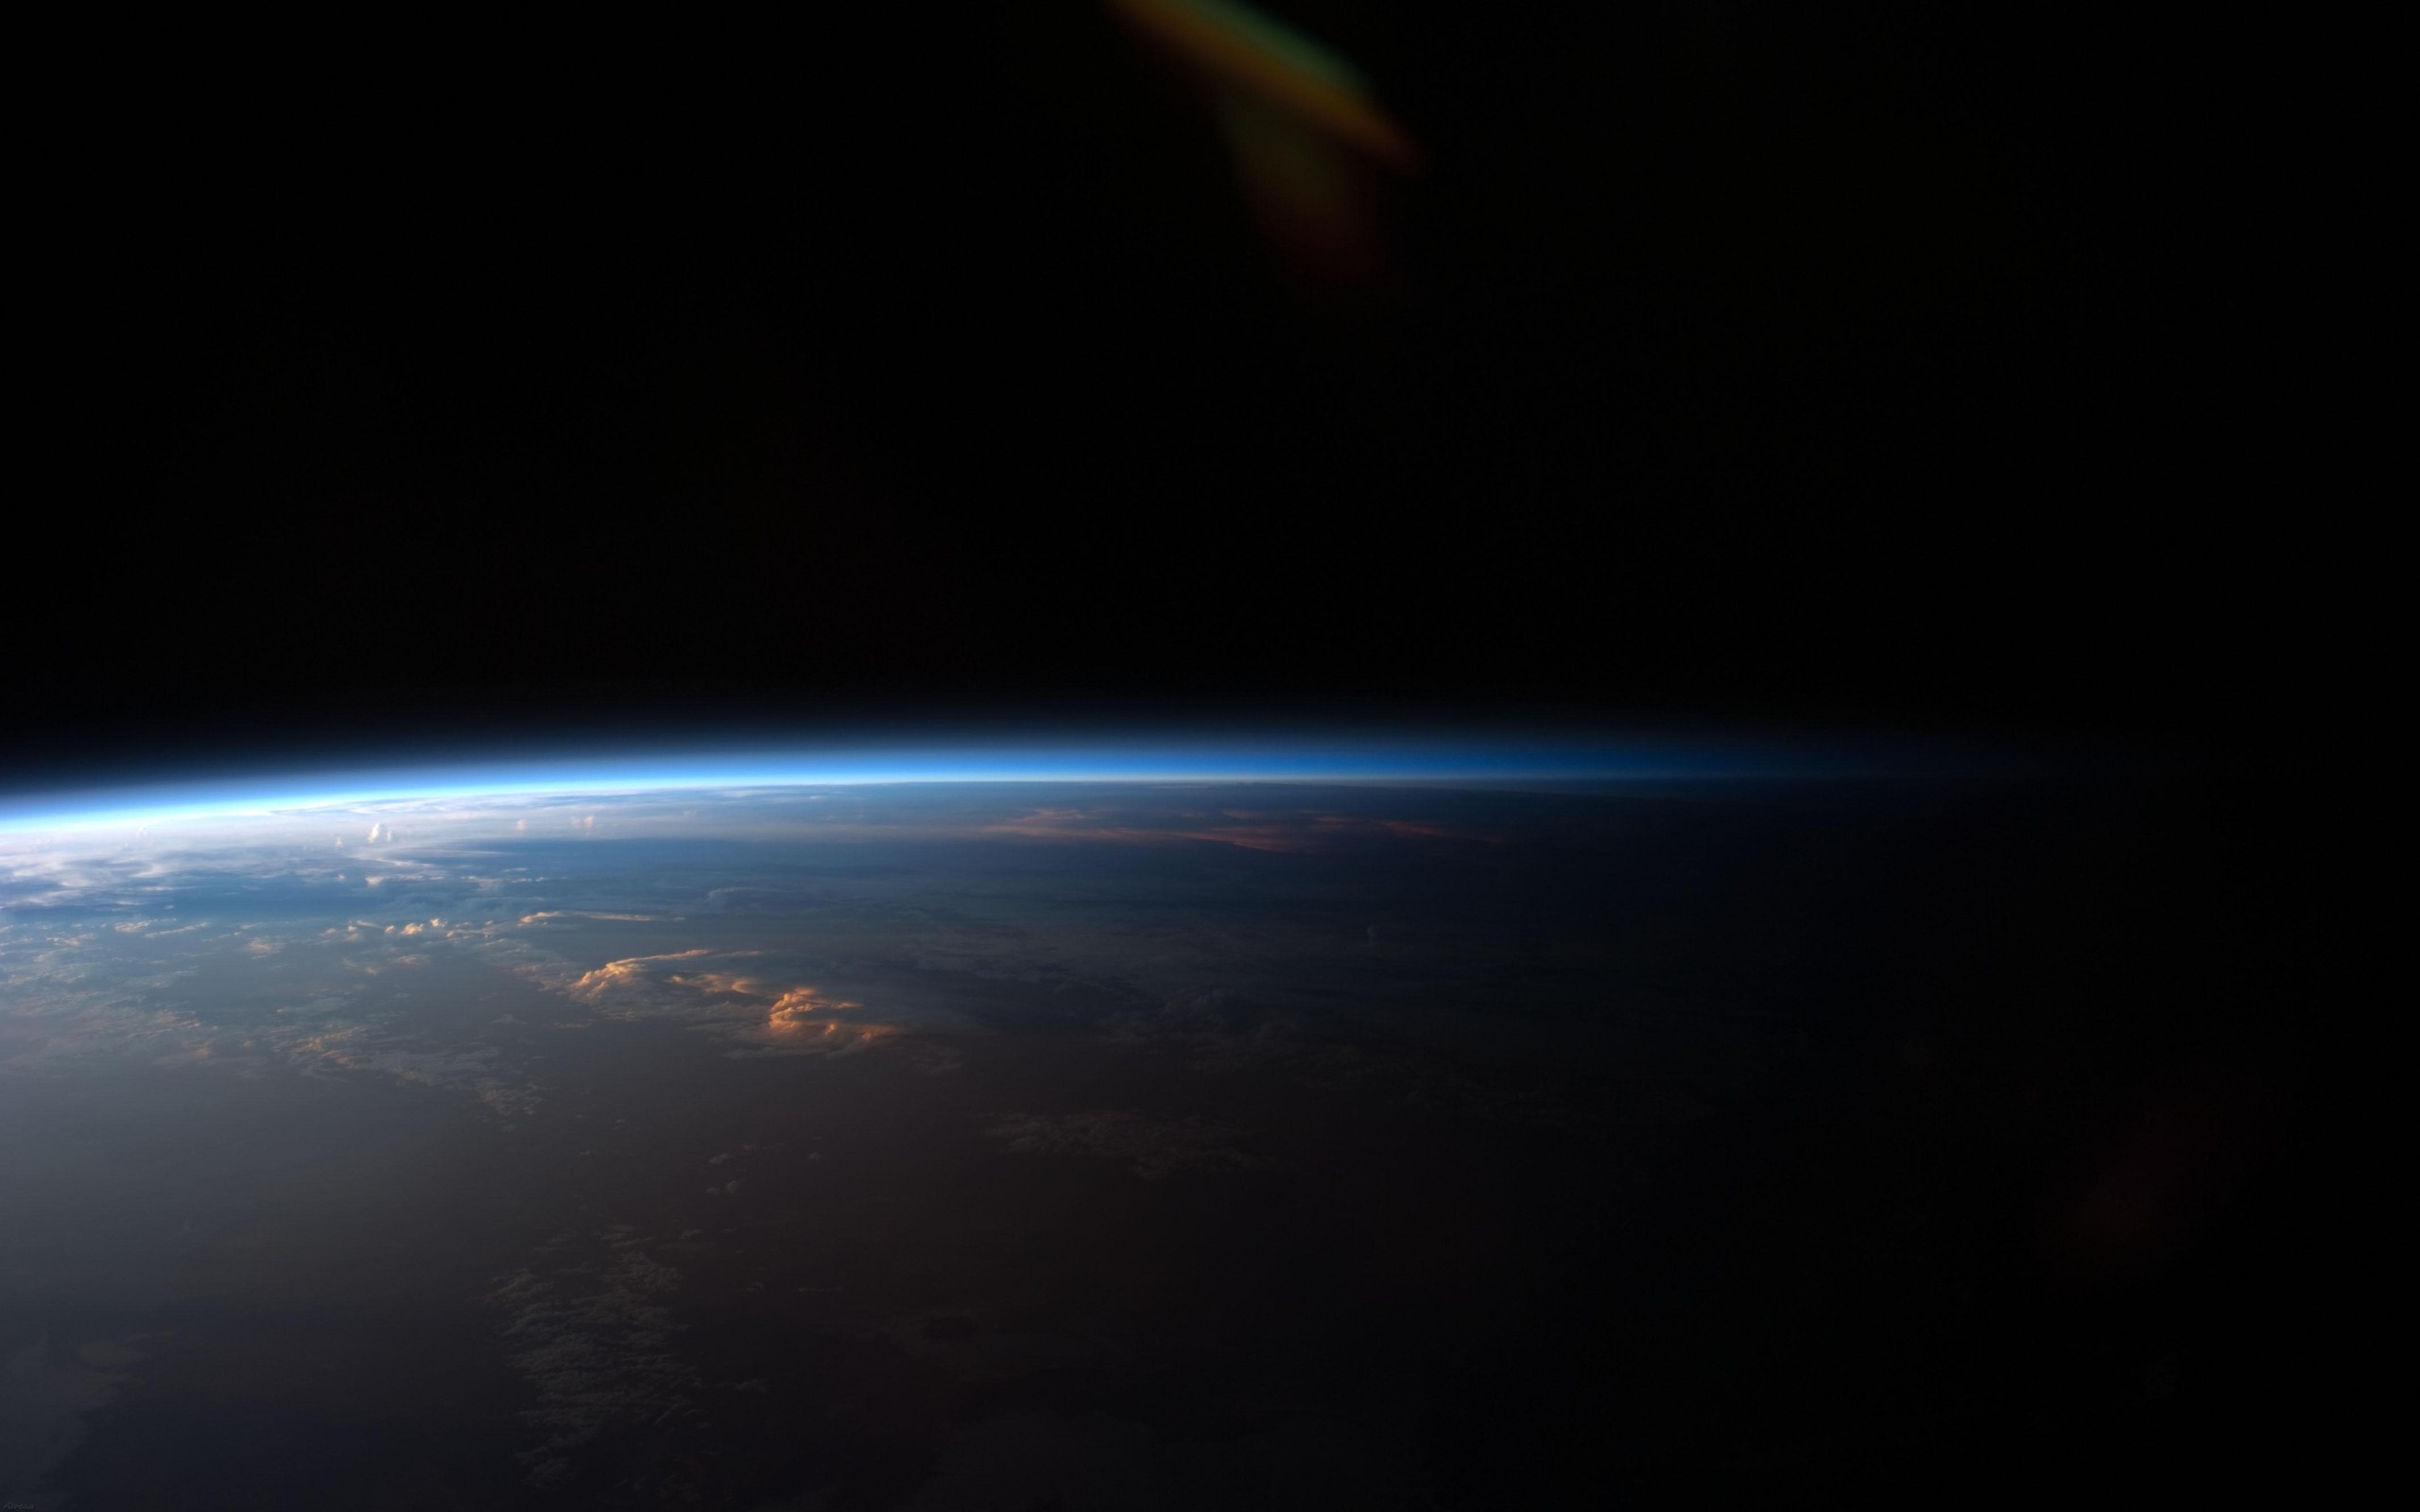 outer_space_earth_station_desktop_2560x1600_hd-wallpaper-1048788